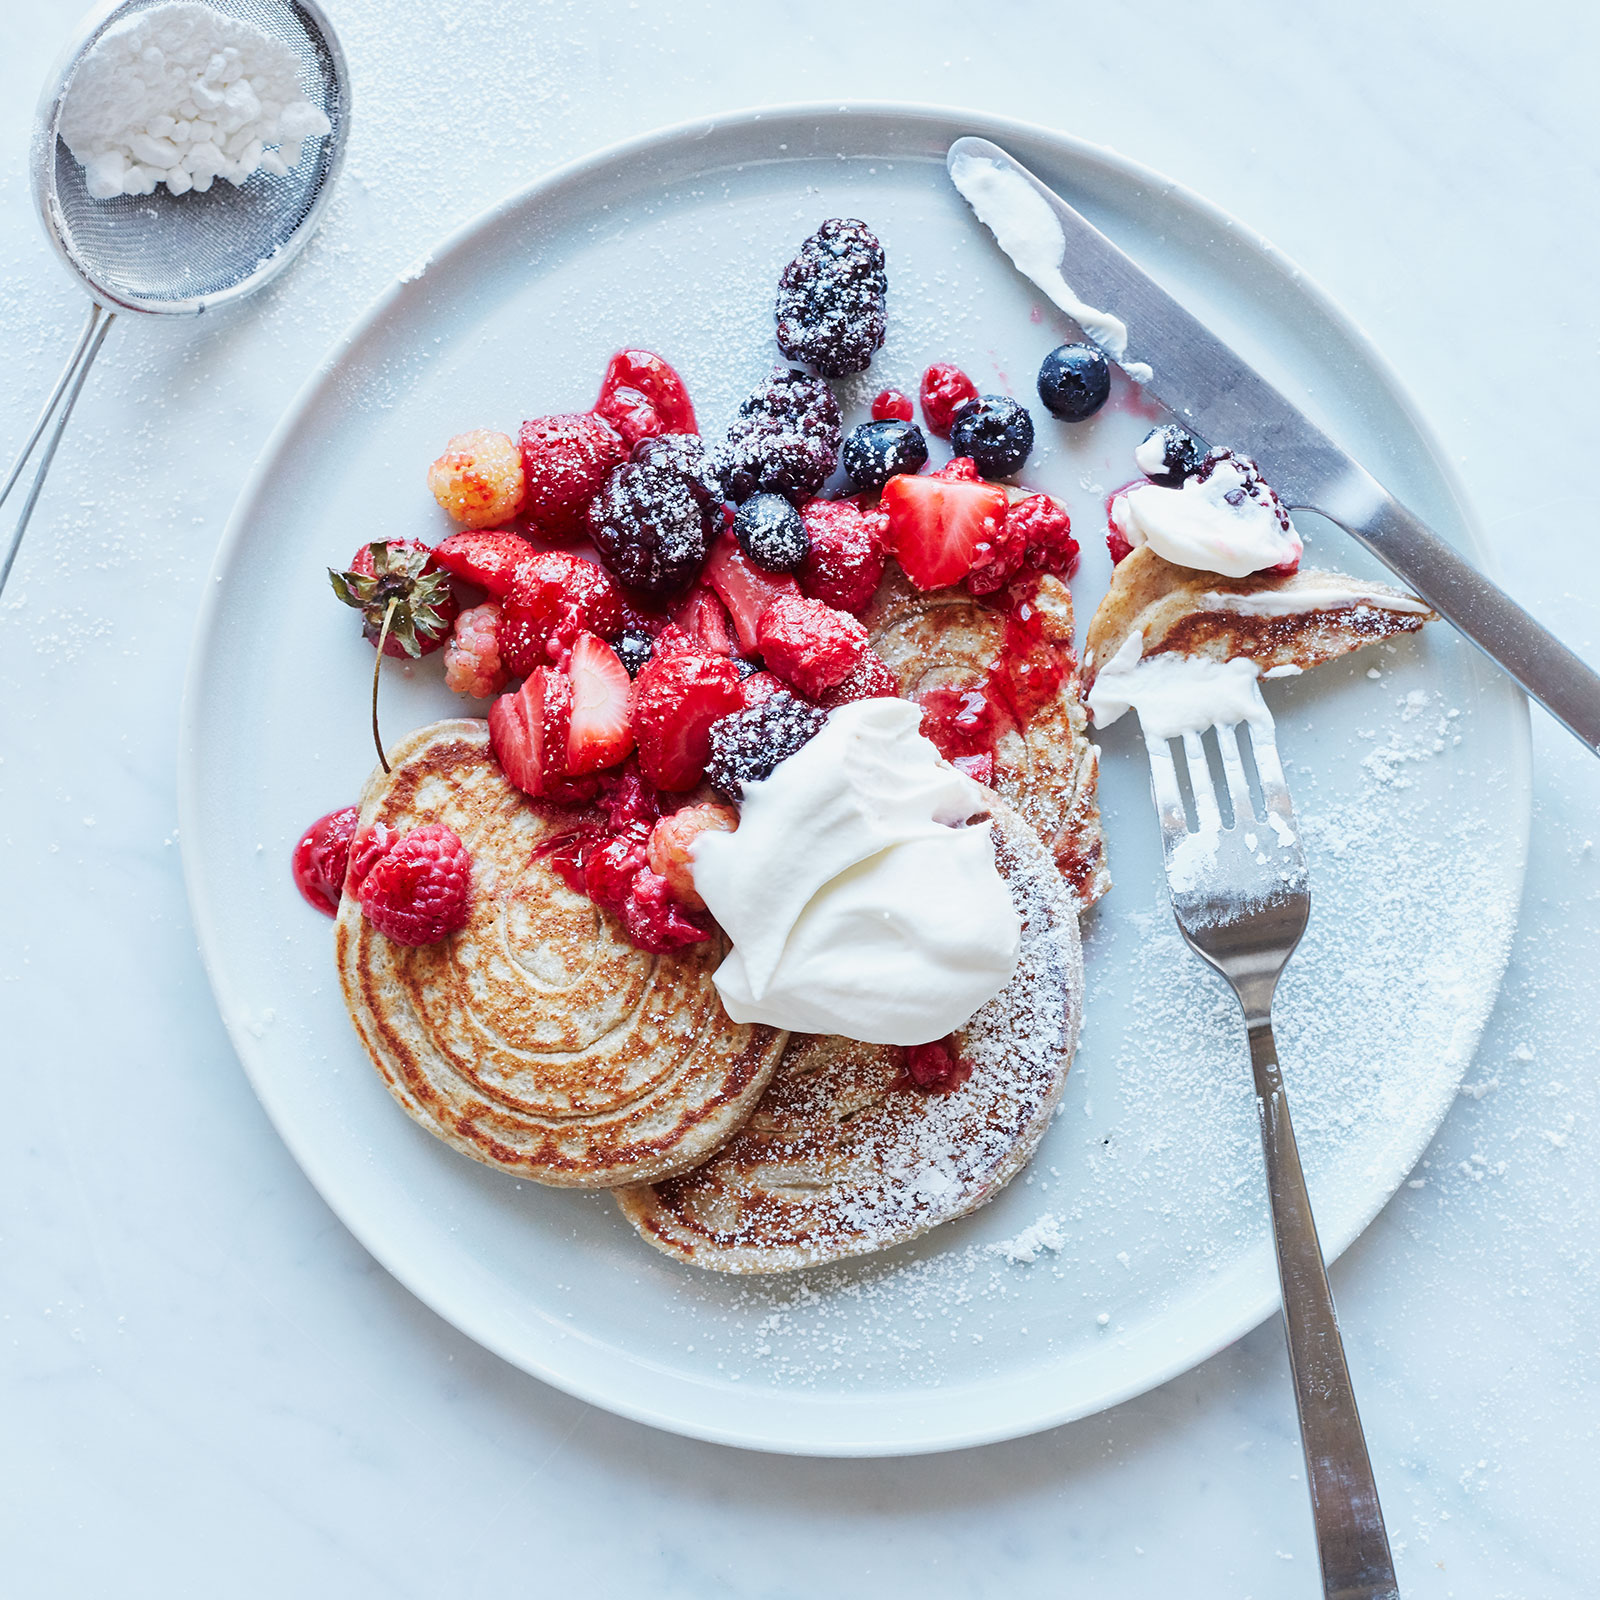 Whole-Wheat Pancakes With Roasted Berries Recipe